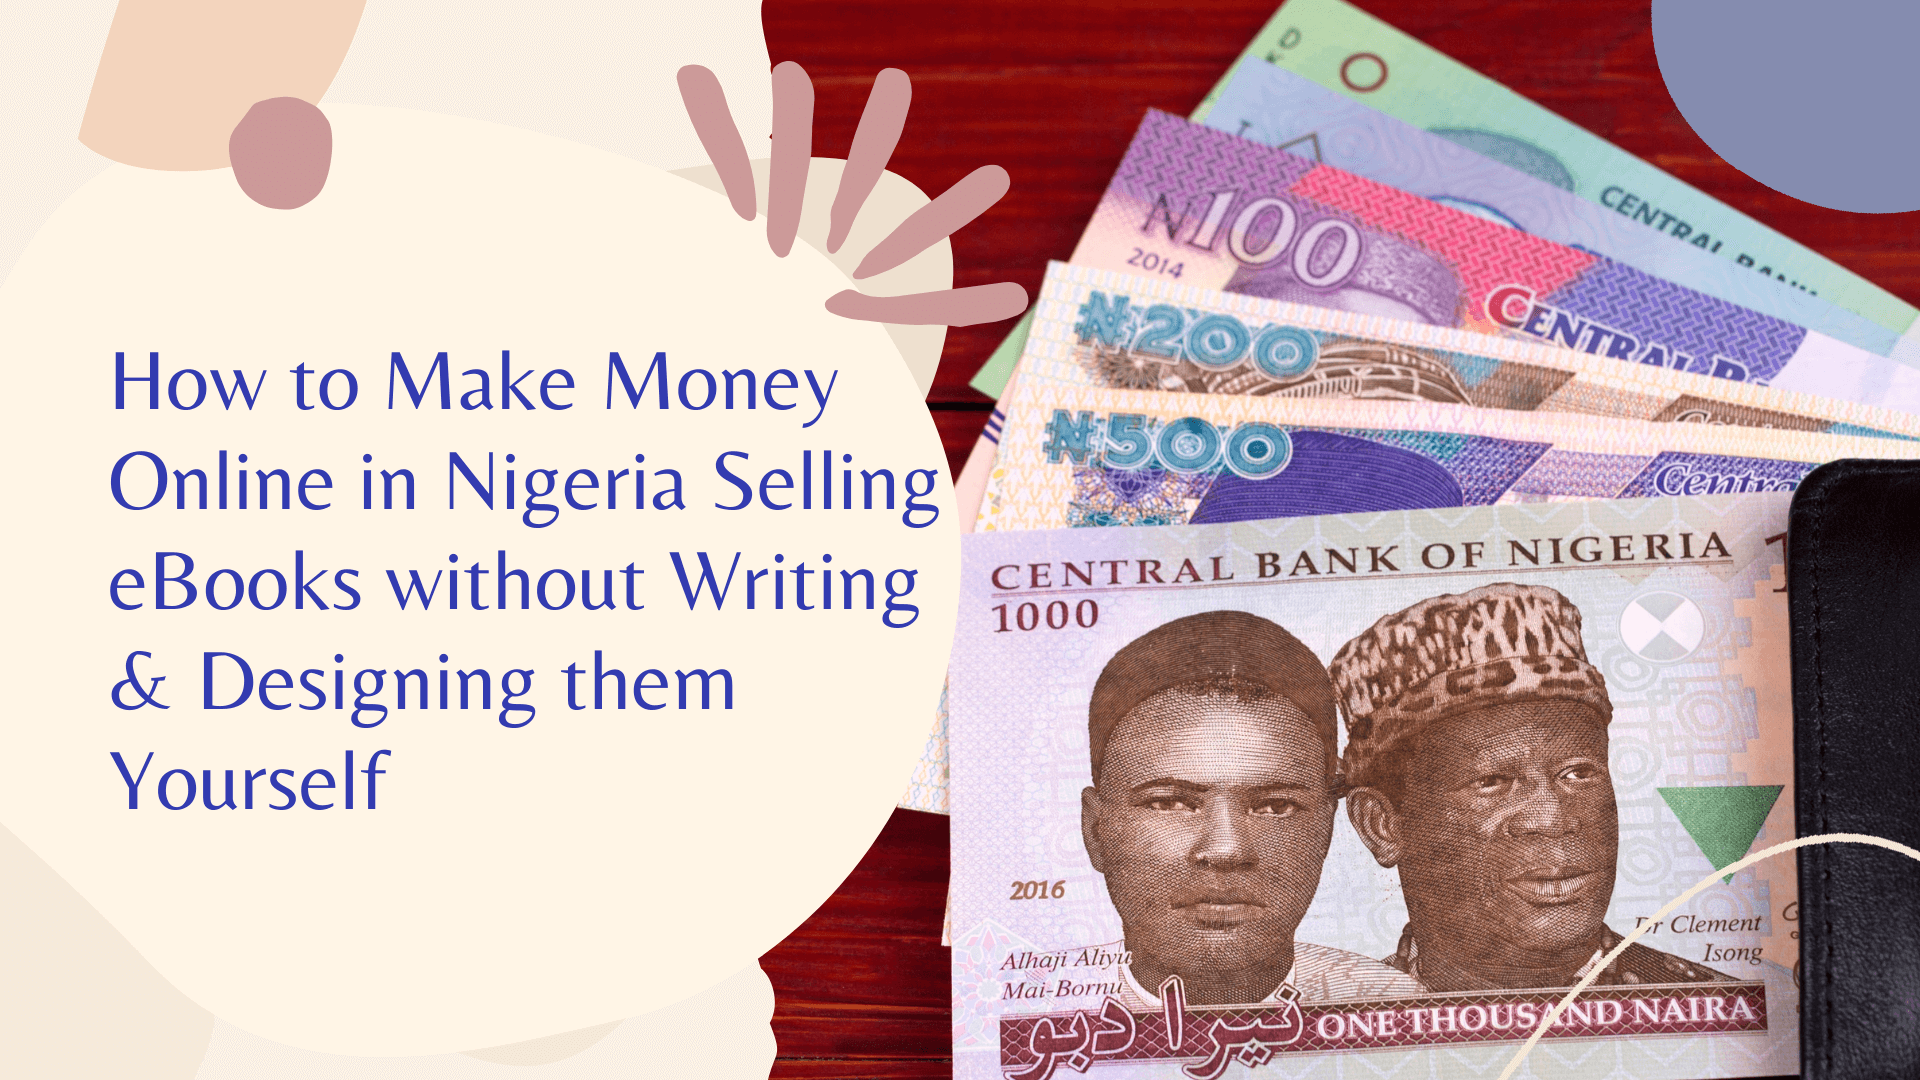 How to Make Money Online in Nigeria Selling eBooks without Writing & Designing them Yourself